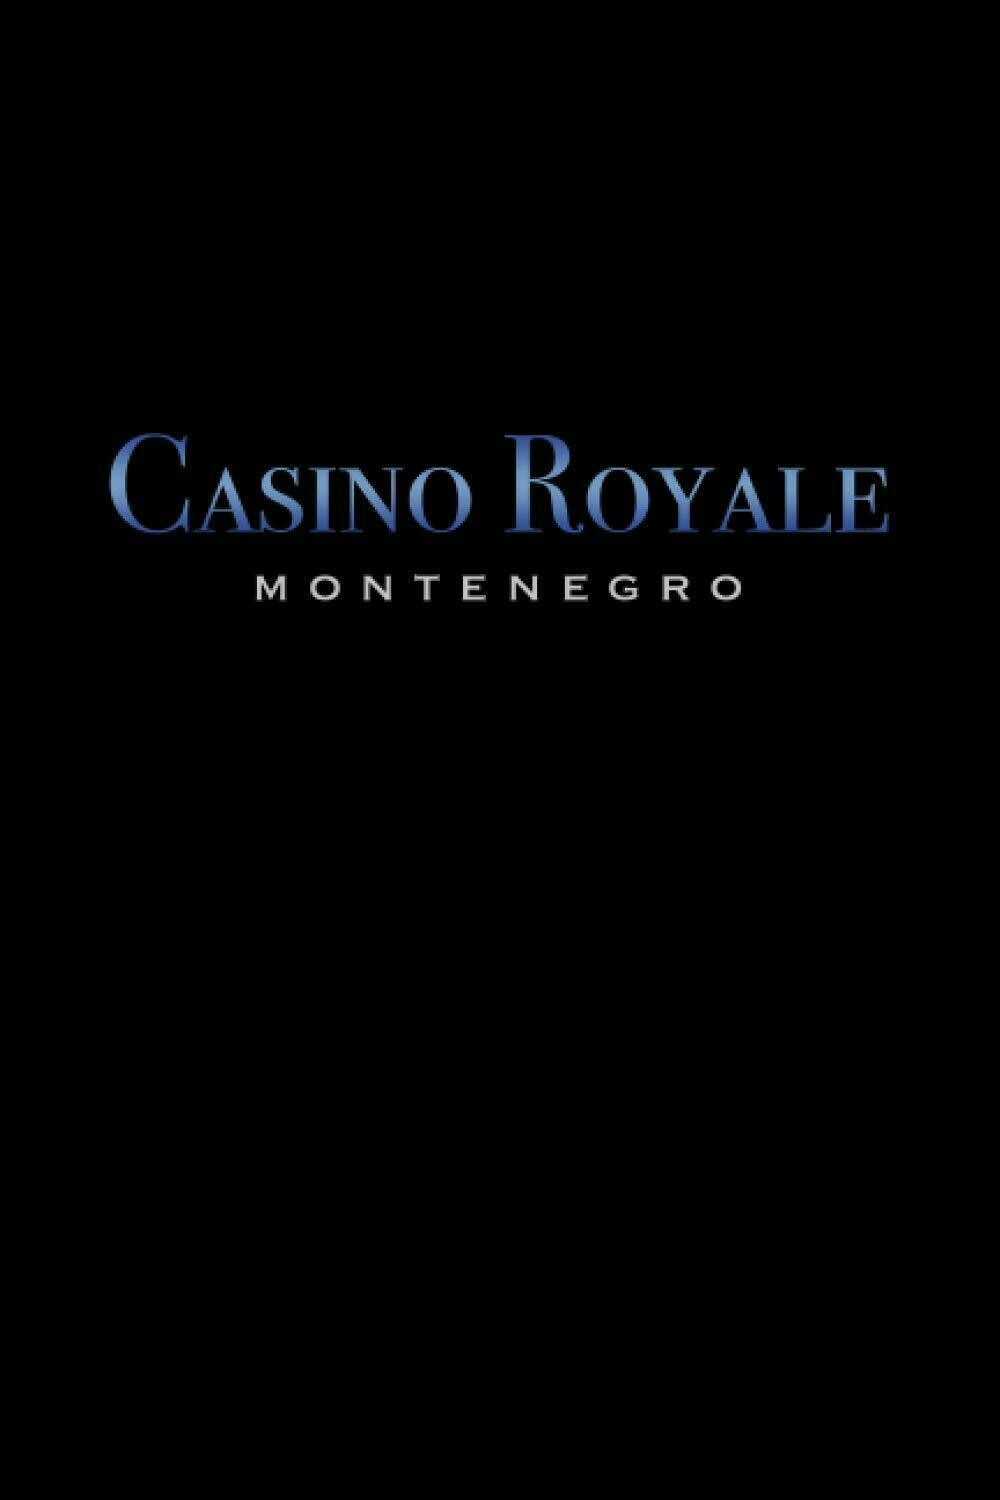 Casino Royale Montenegro [James Bond / 007] Luxury Lined Journal - Diary Notebook Notepad Book Movie Prop Replica